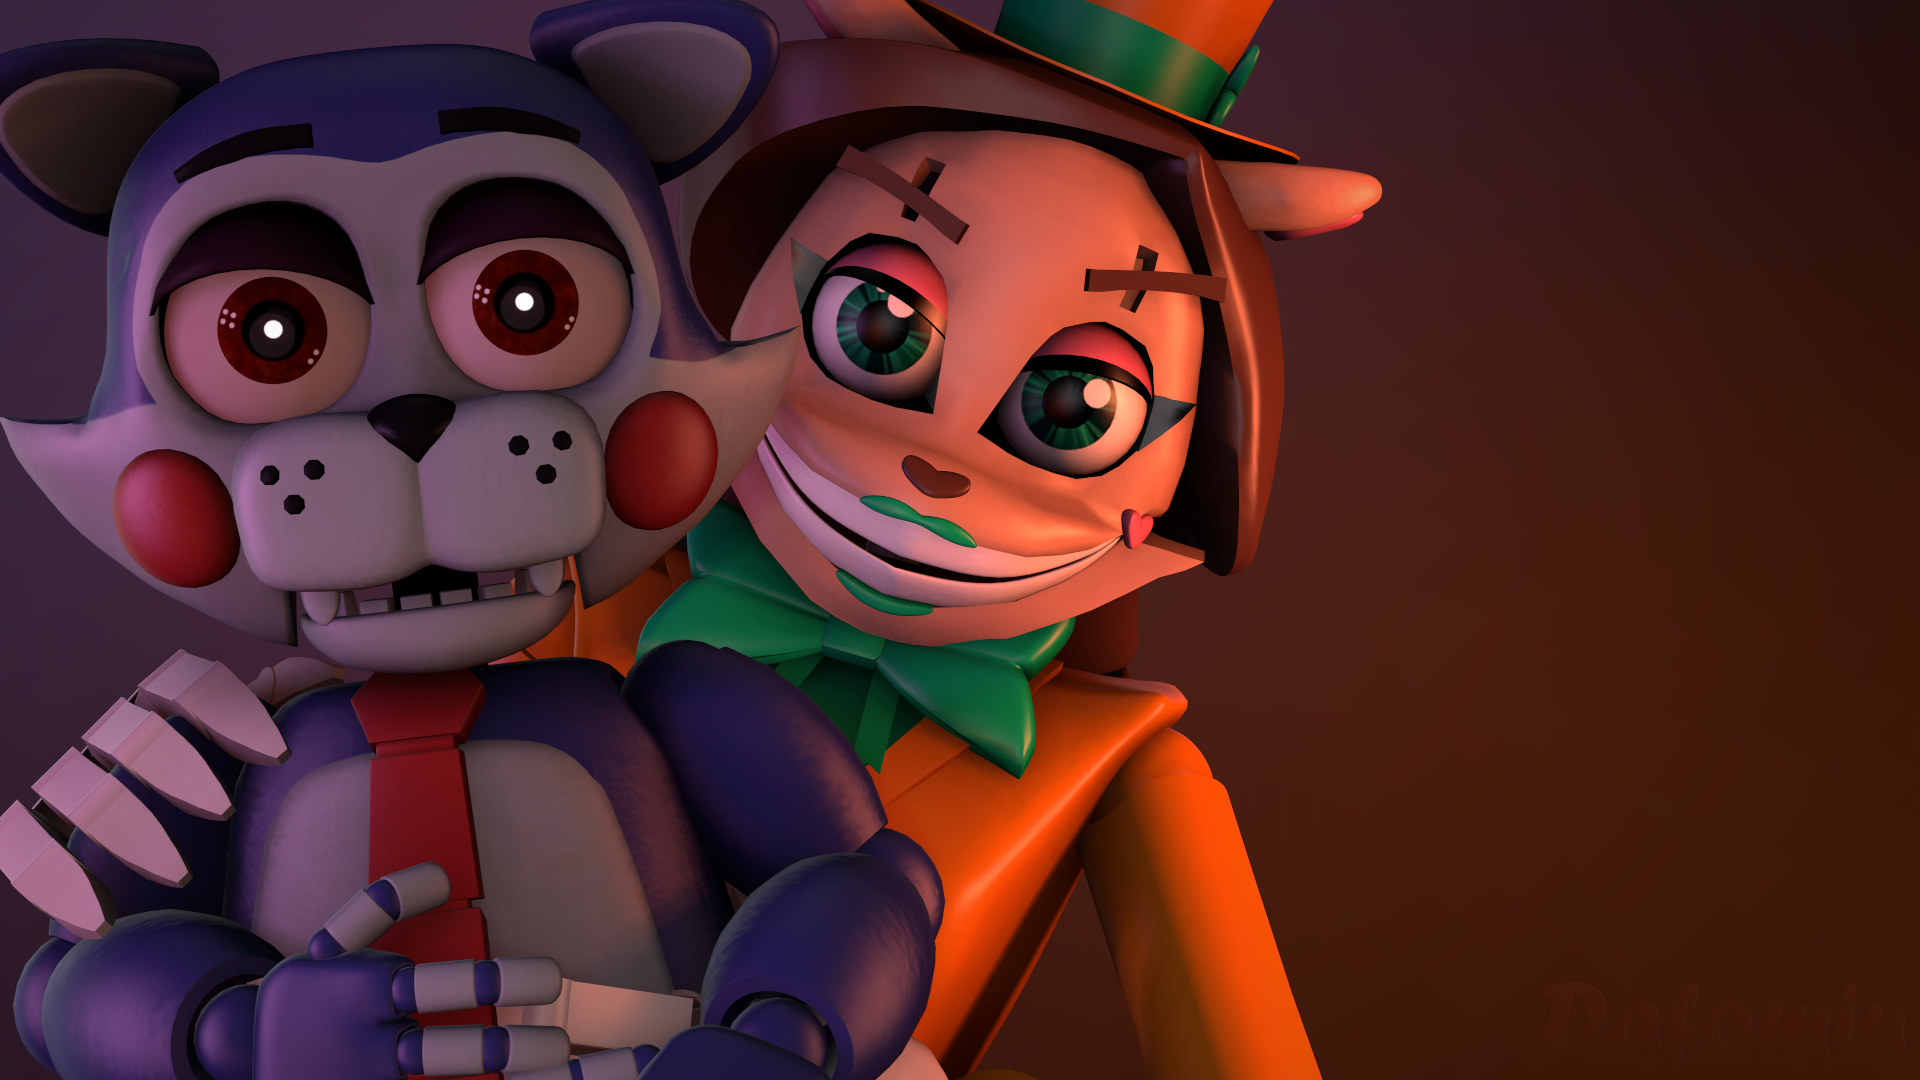 Fnaf Sfm Wallpaper Netty And Adventure Candy By Dafomin On Deviantart